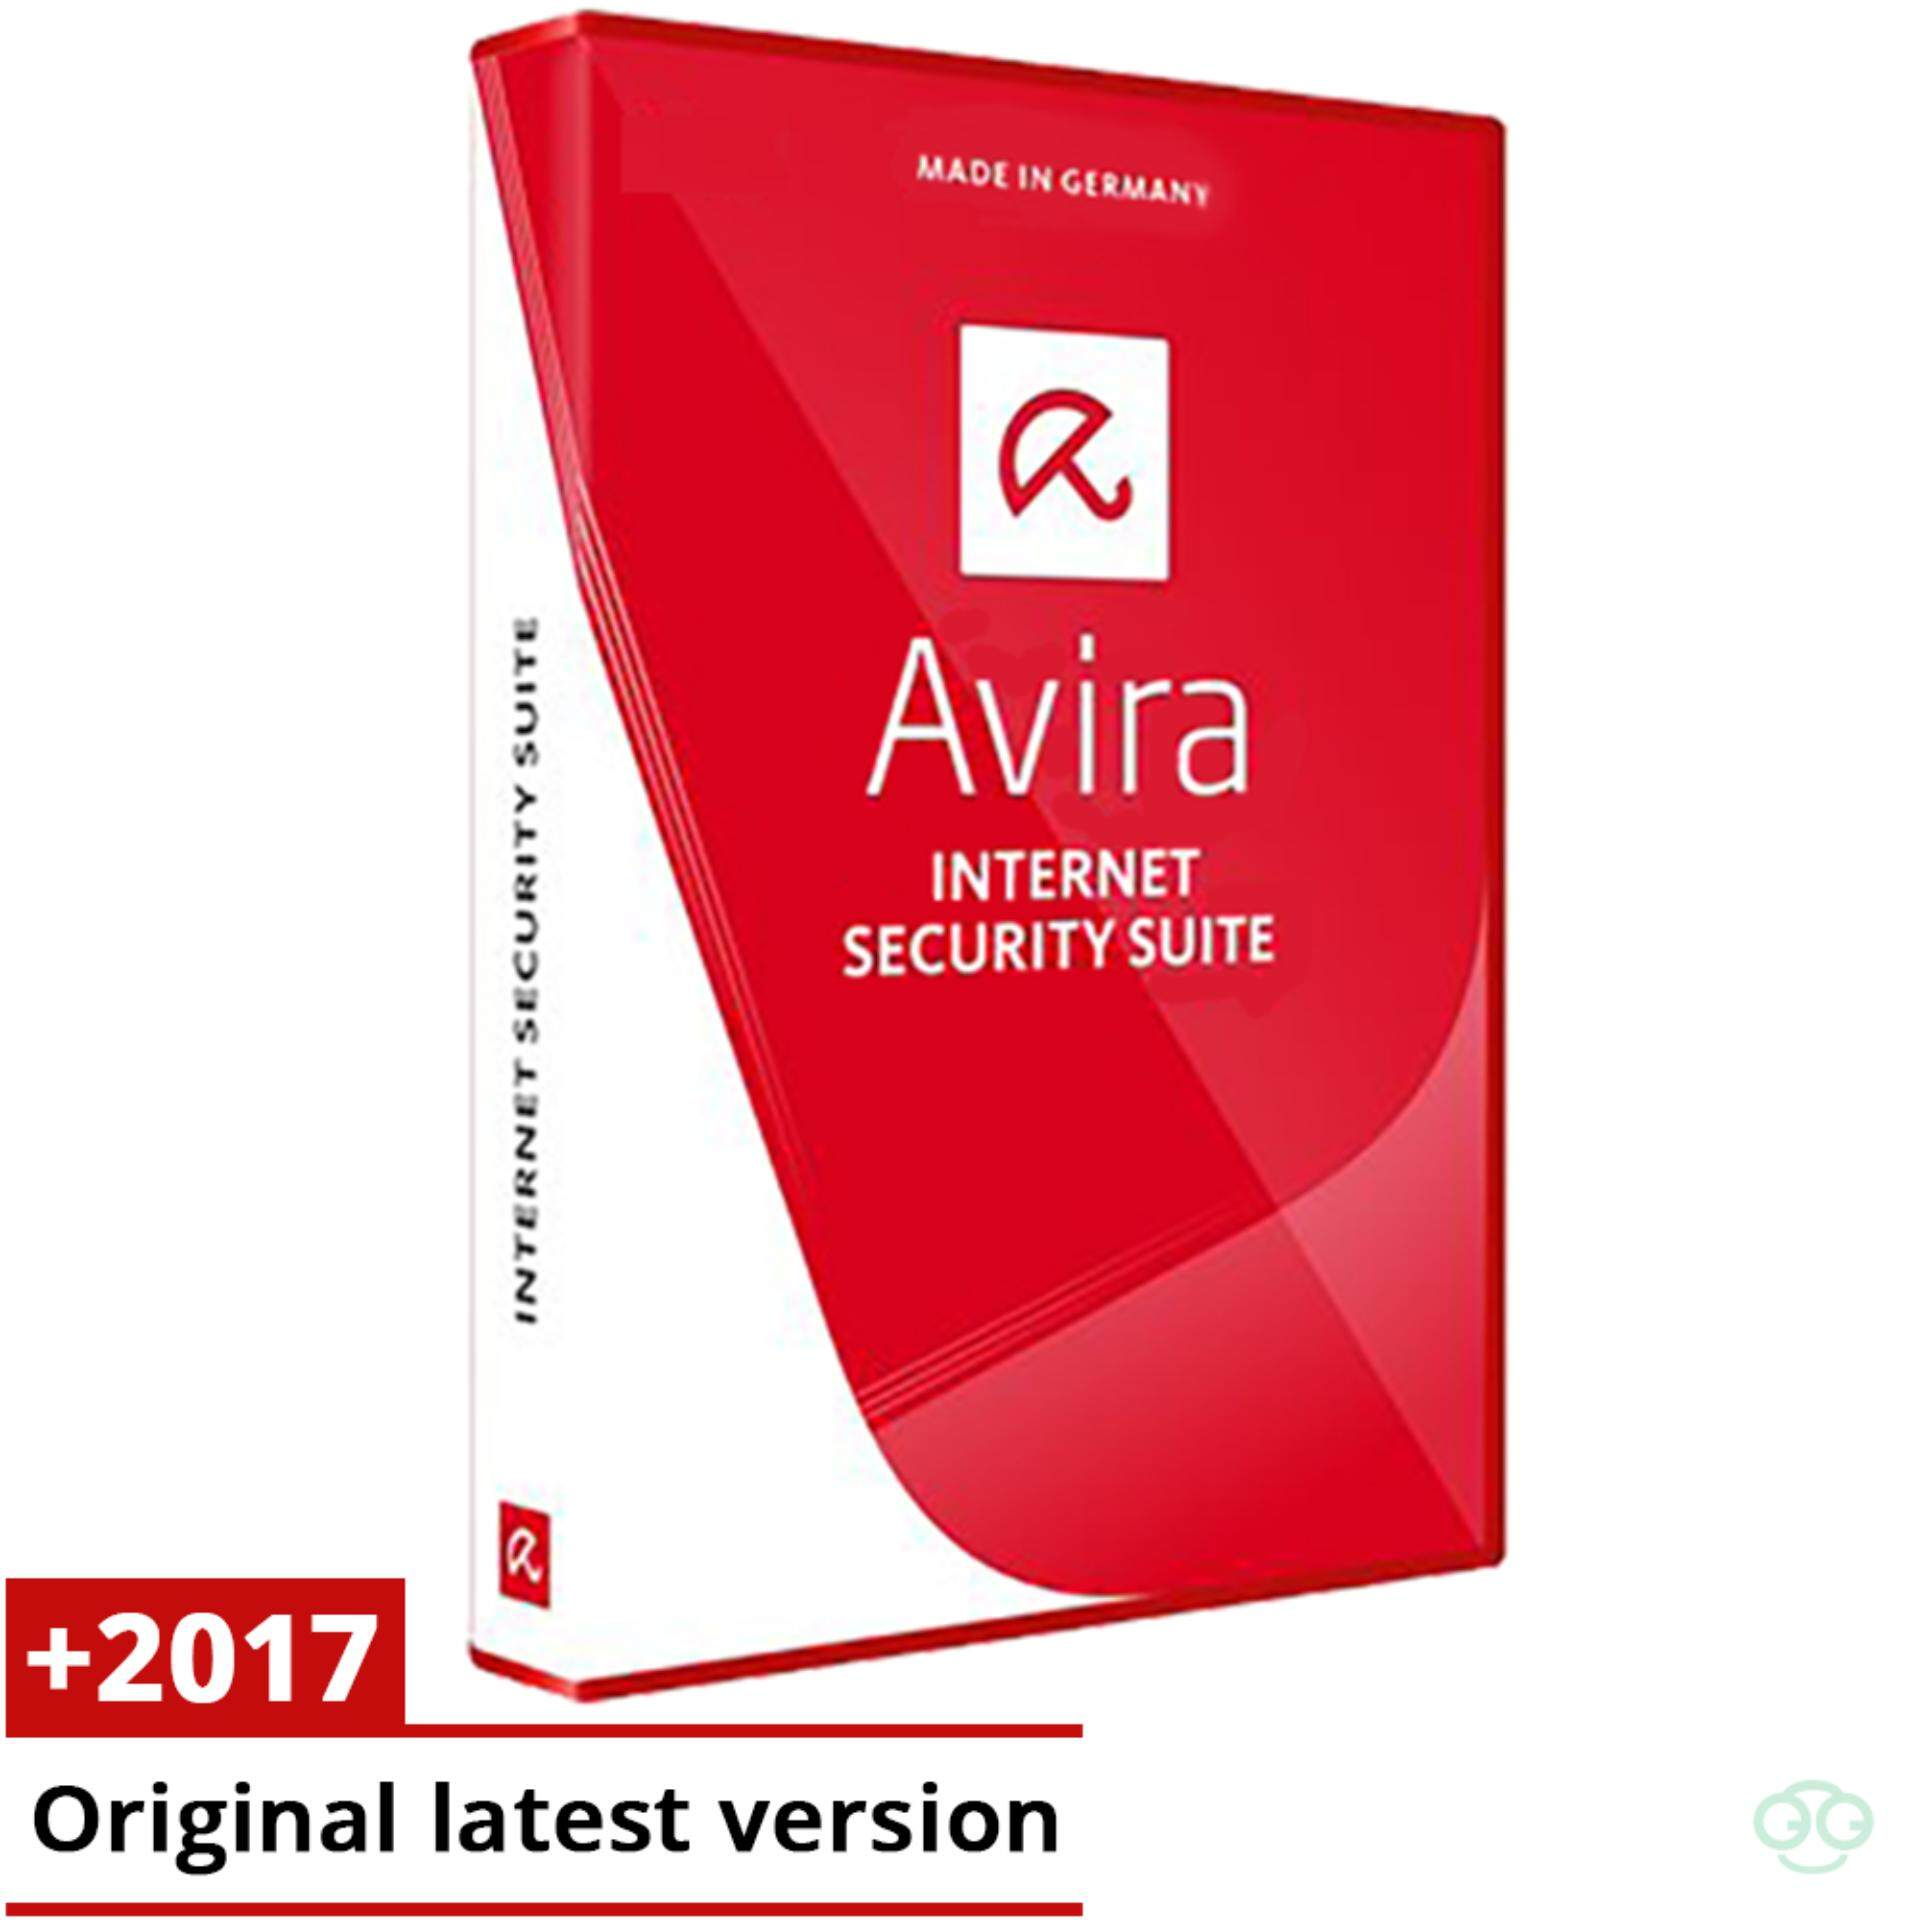 Avira internet security 2017 final version with crack